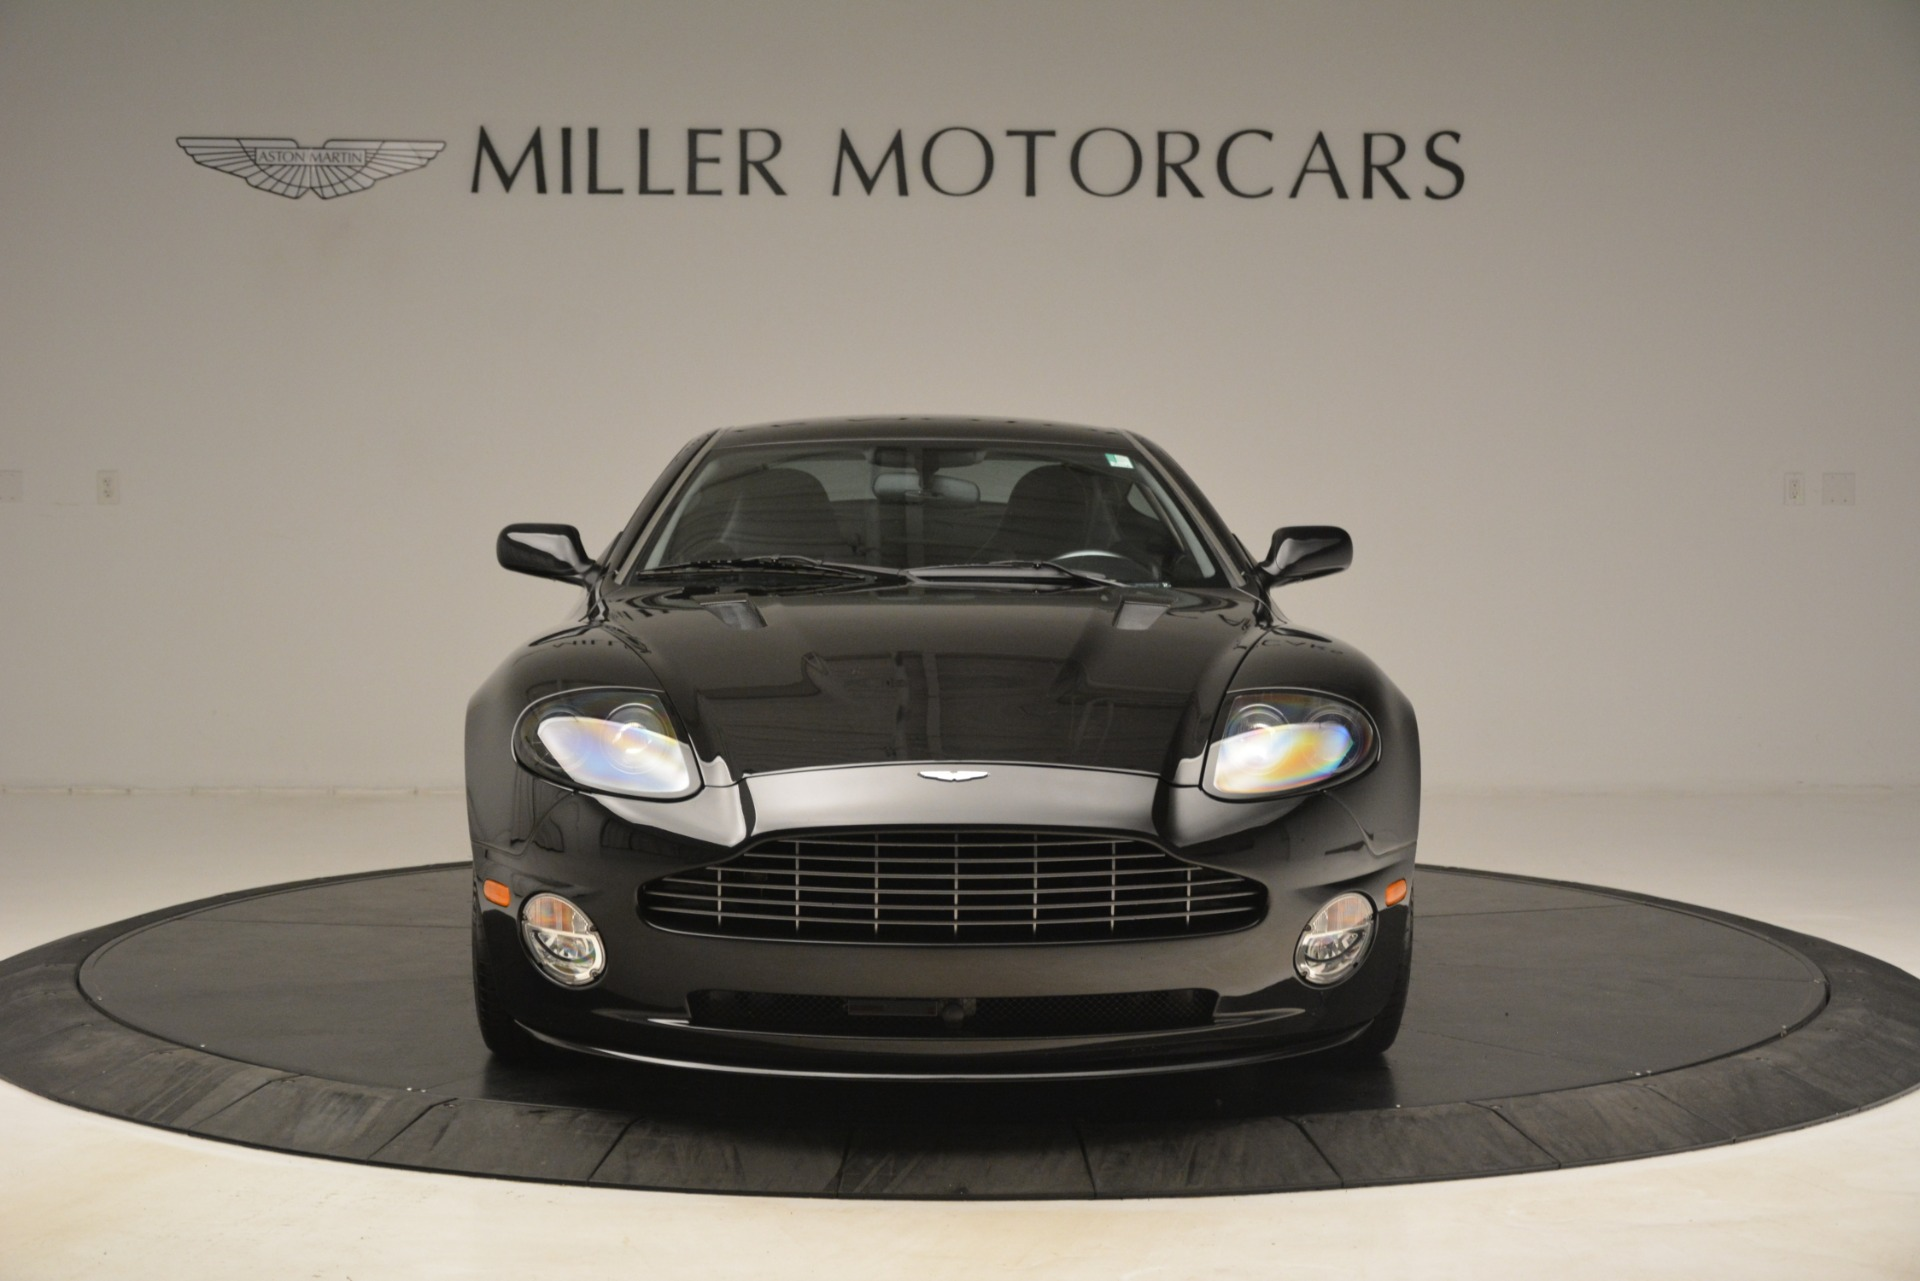 Used 2005 Aston Martin V12 Vanquish S Coupe For Sale In Westport, CT 3218_p12